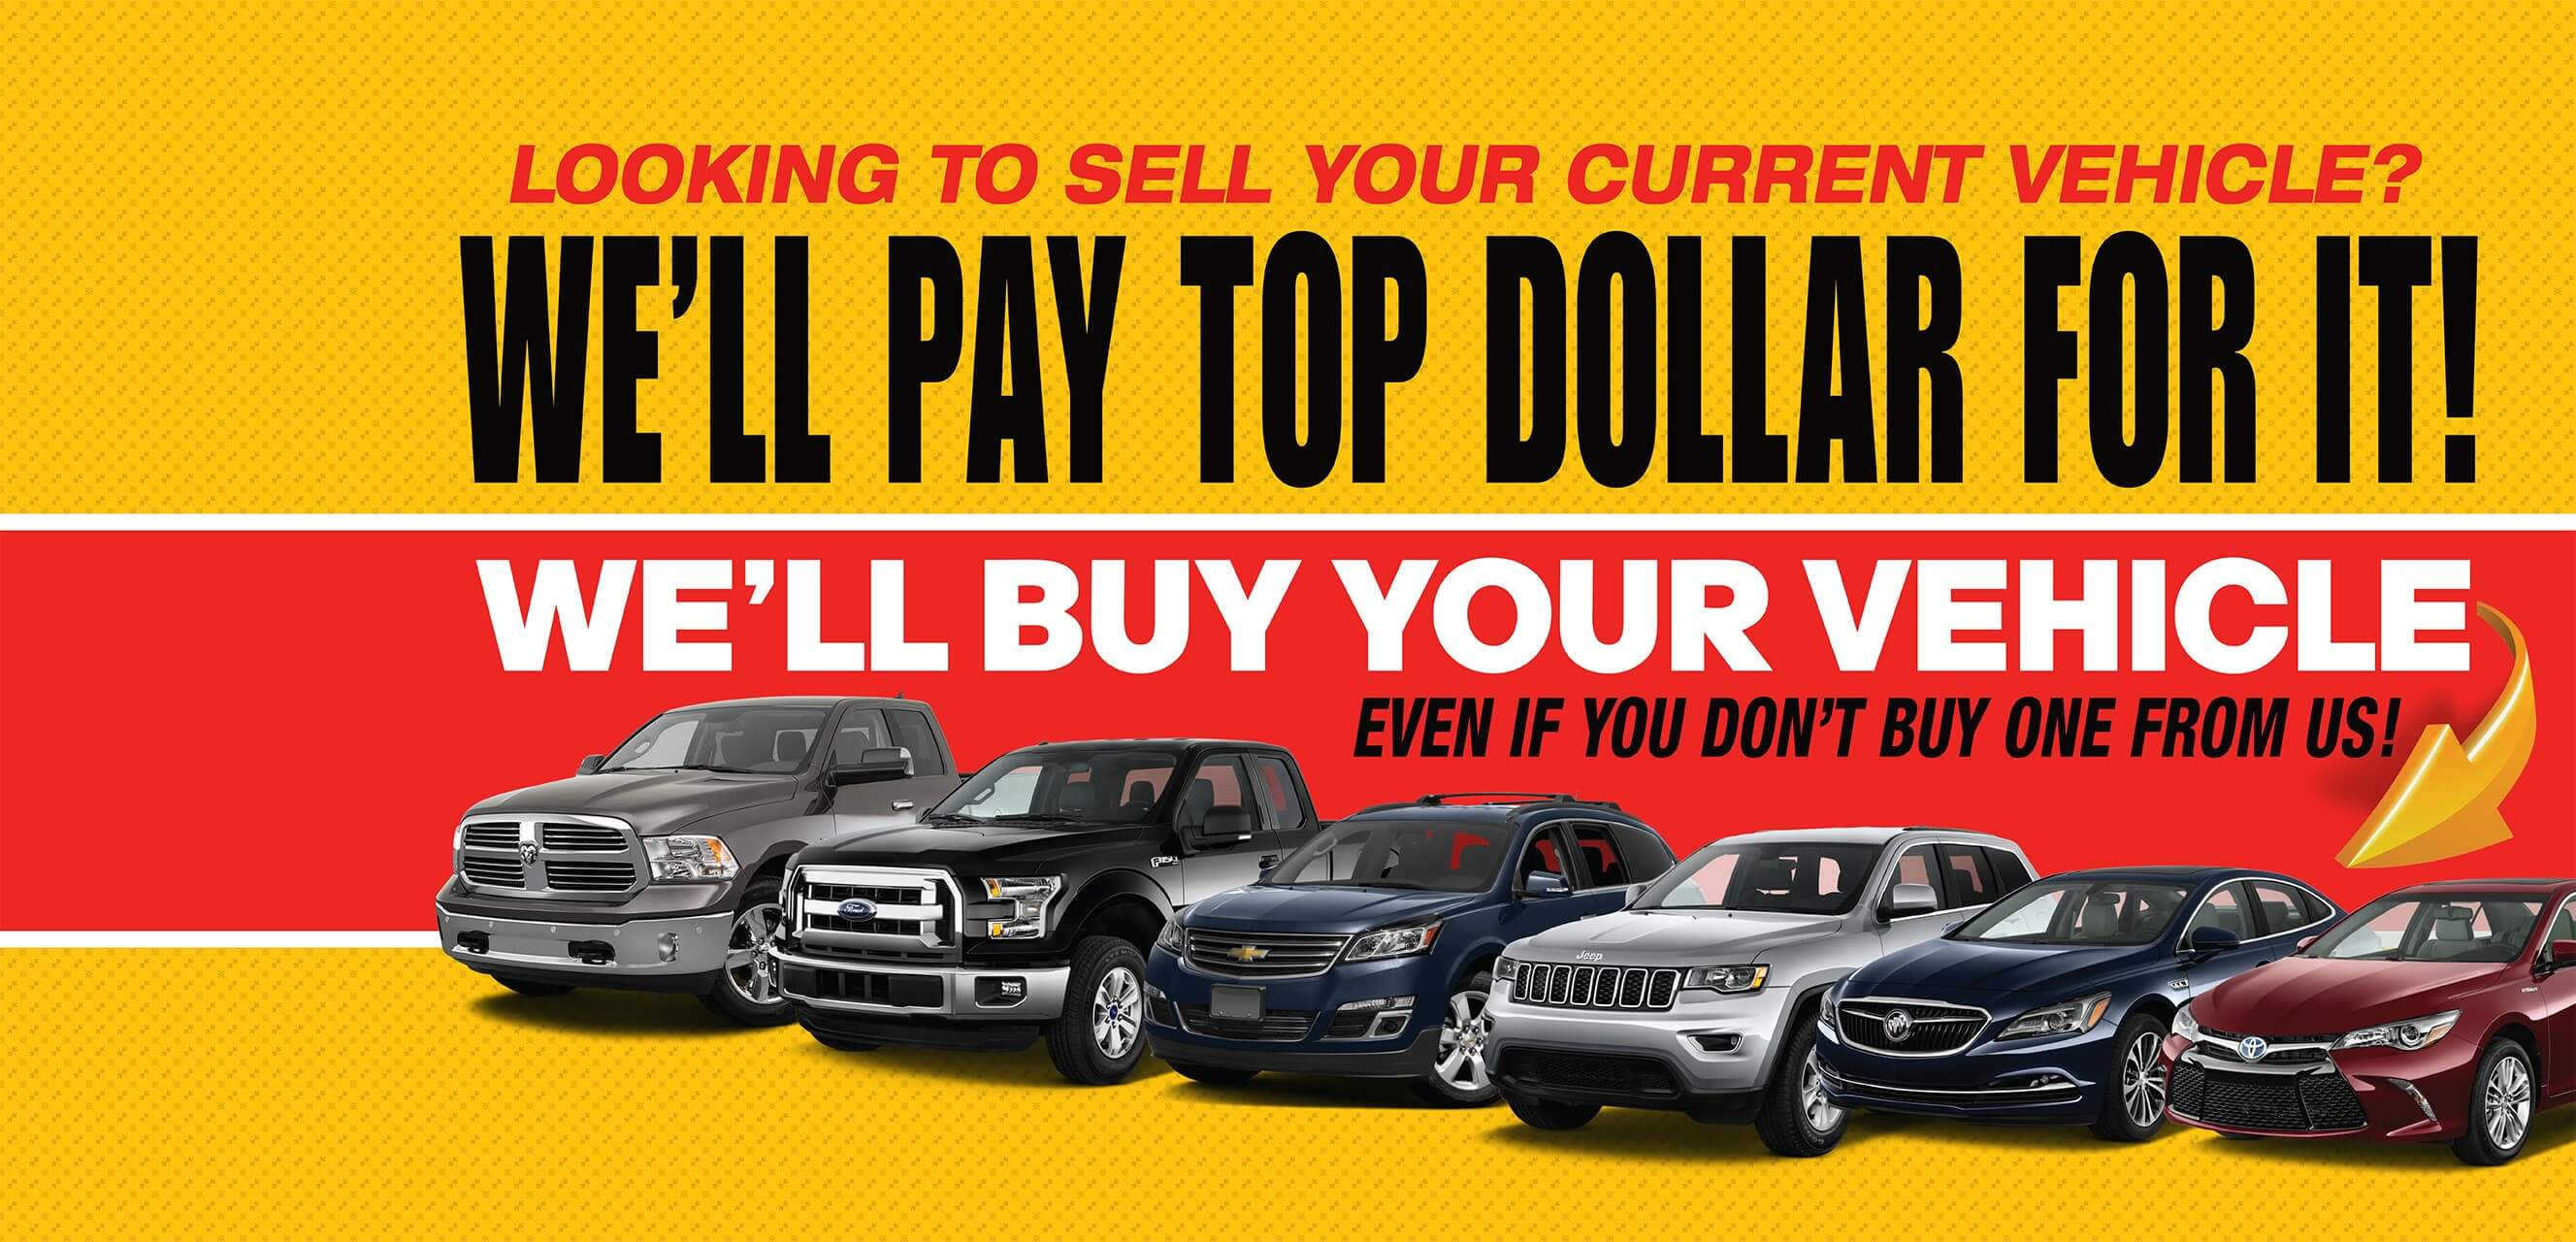 Looking to sell your current vehicle? We'll pay top dollar for it! Behlmann will buy yours, even if you don't buy ours.